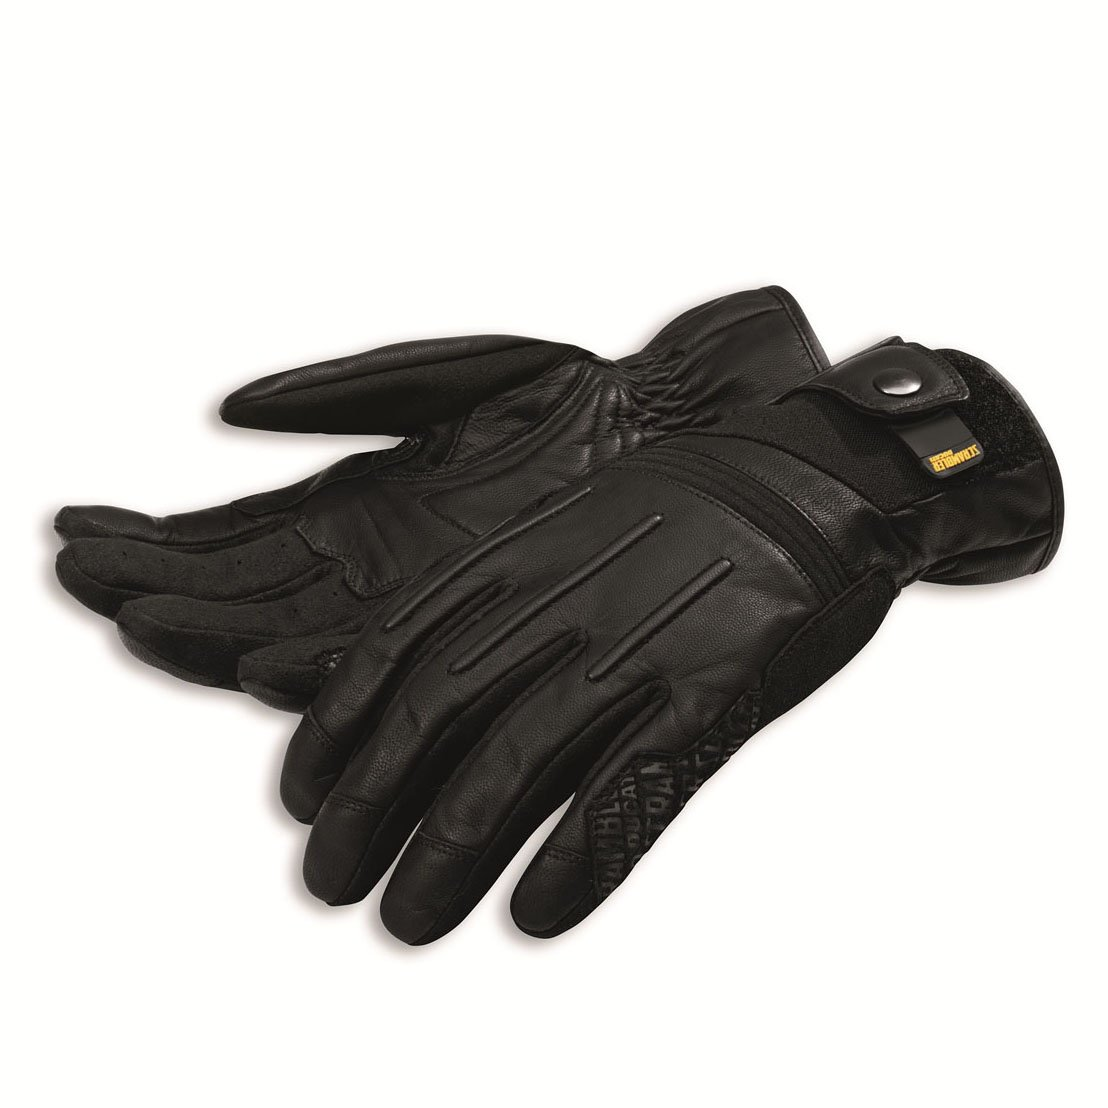 Ducati Scrambler Streetmaster Gloves - Black Medium